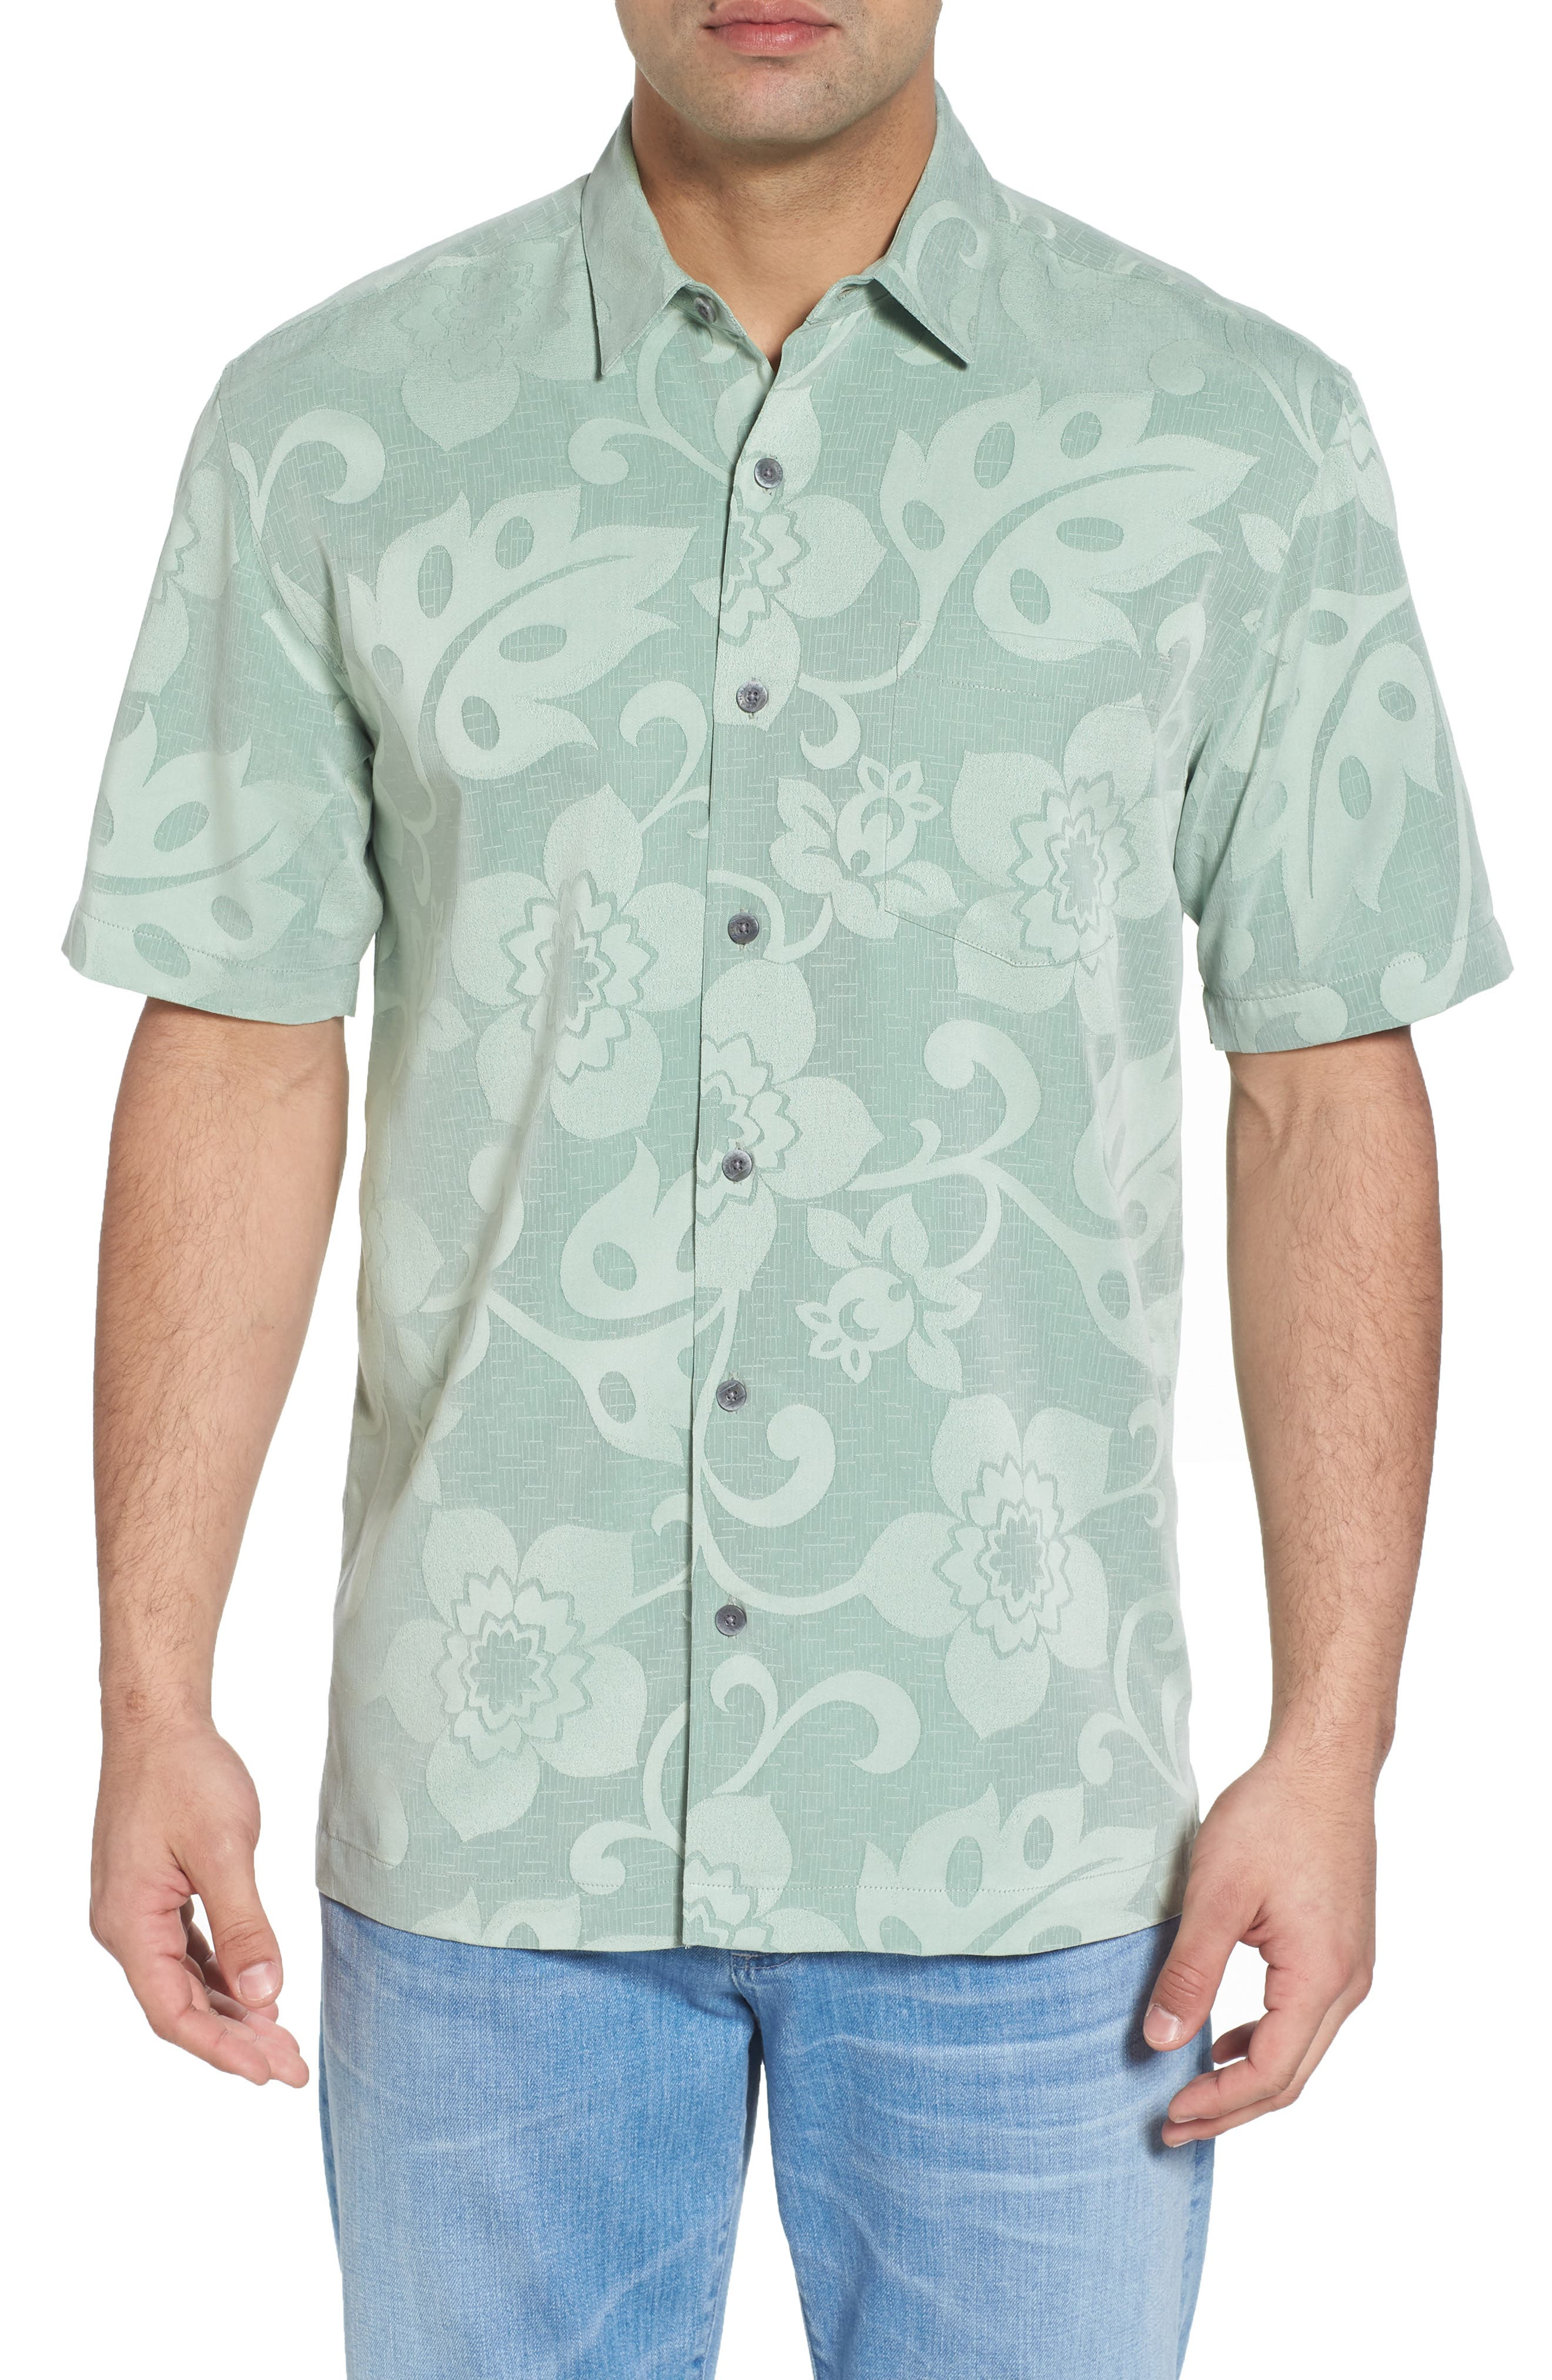 Kalawai Relaxed Fit Camp Shirt,                             Main thumbnail 1, color,                             310